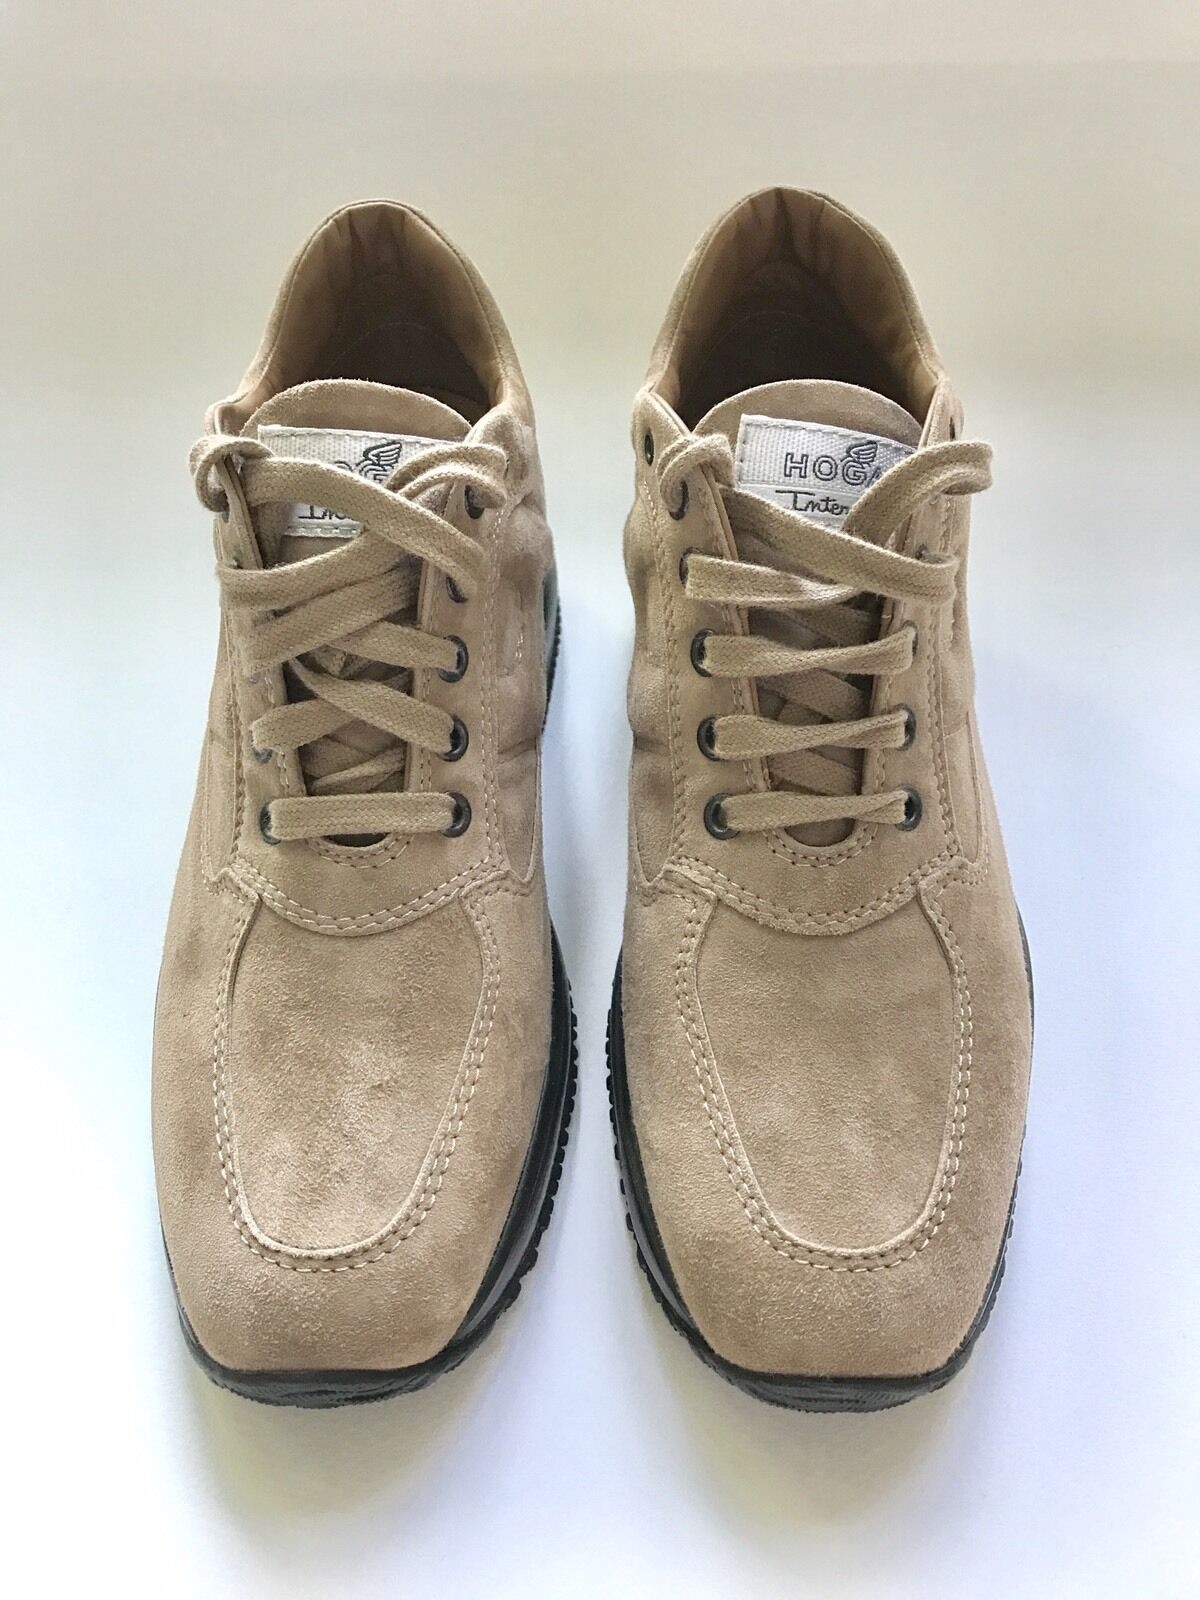 HOGAN women shoes Interactive tan suede lace up sneaker